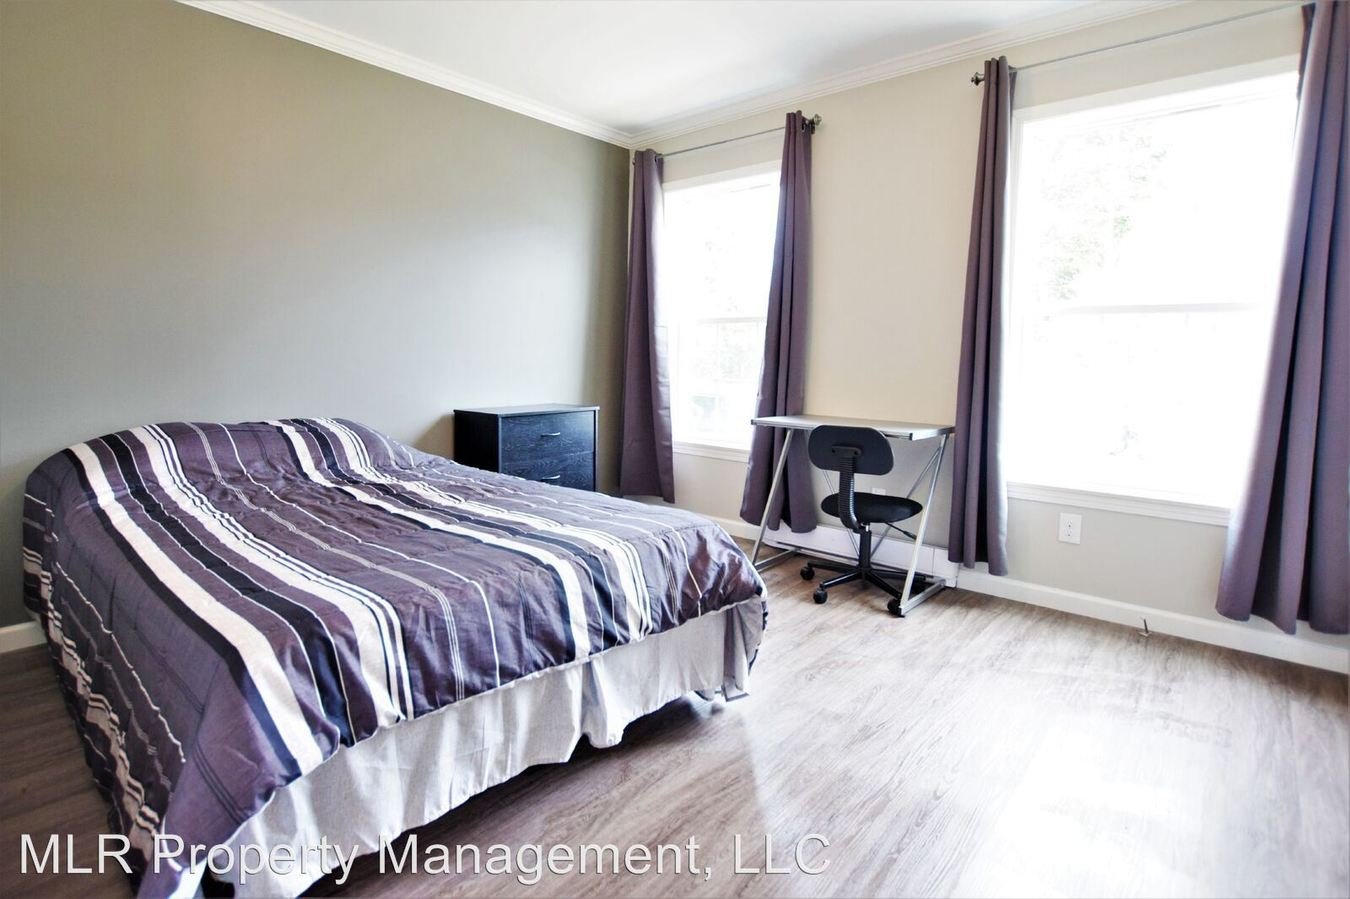 3 Bedrooms 2 Bathrooms Apartment for rent at 607 S. Aurora St in Ithaca, NY